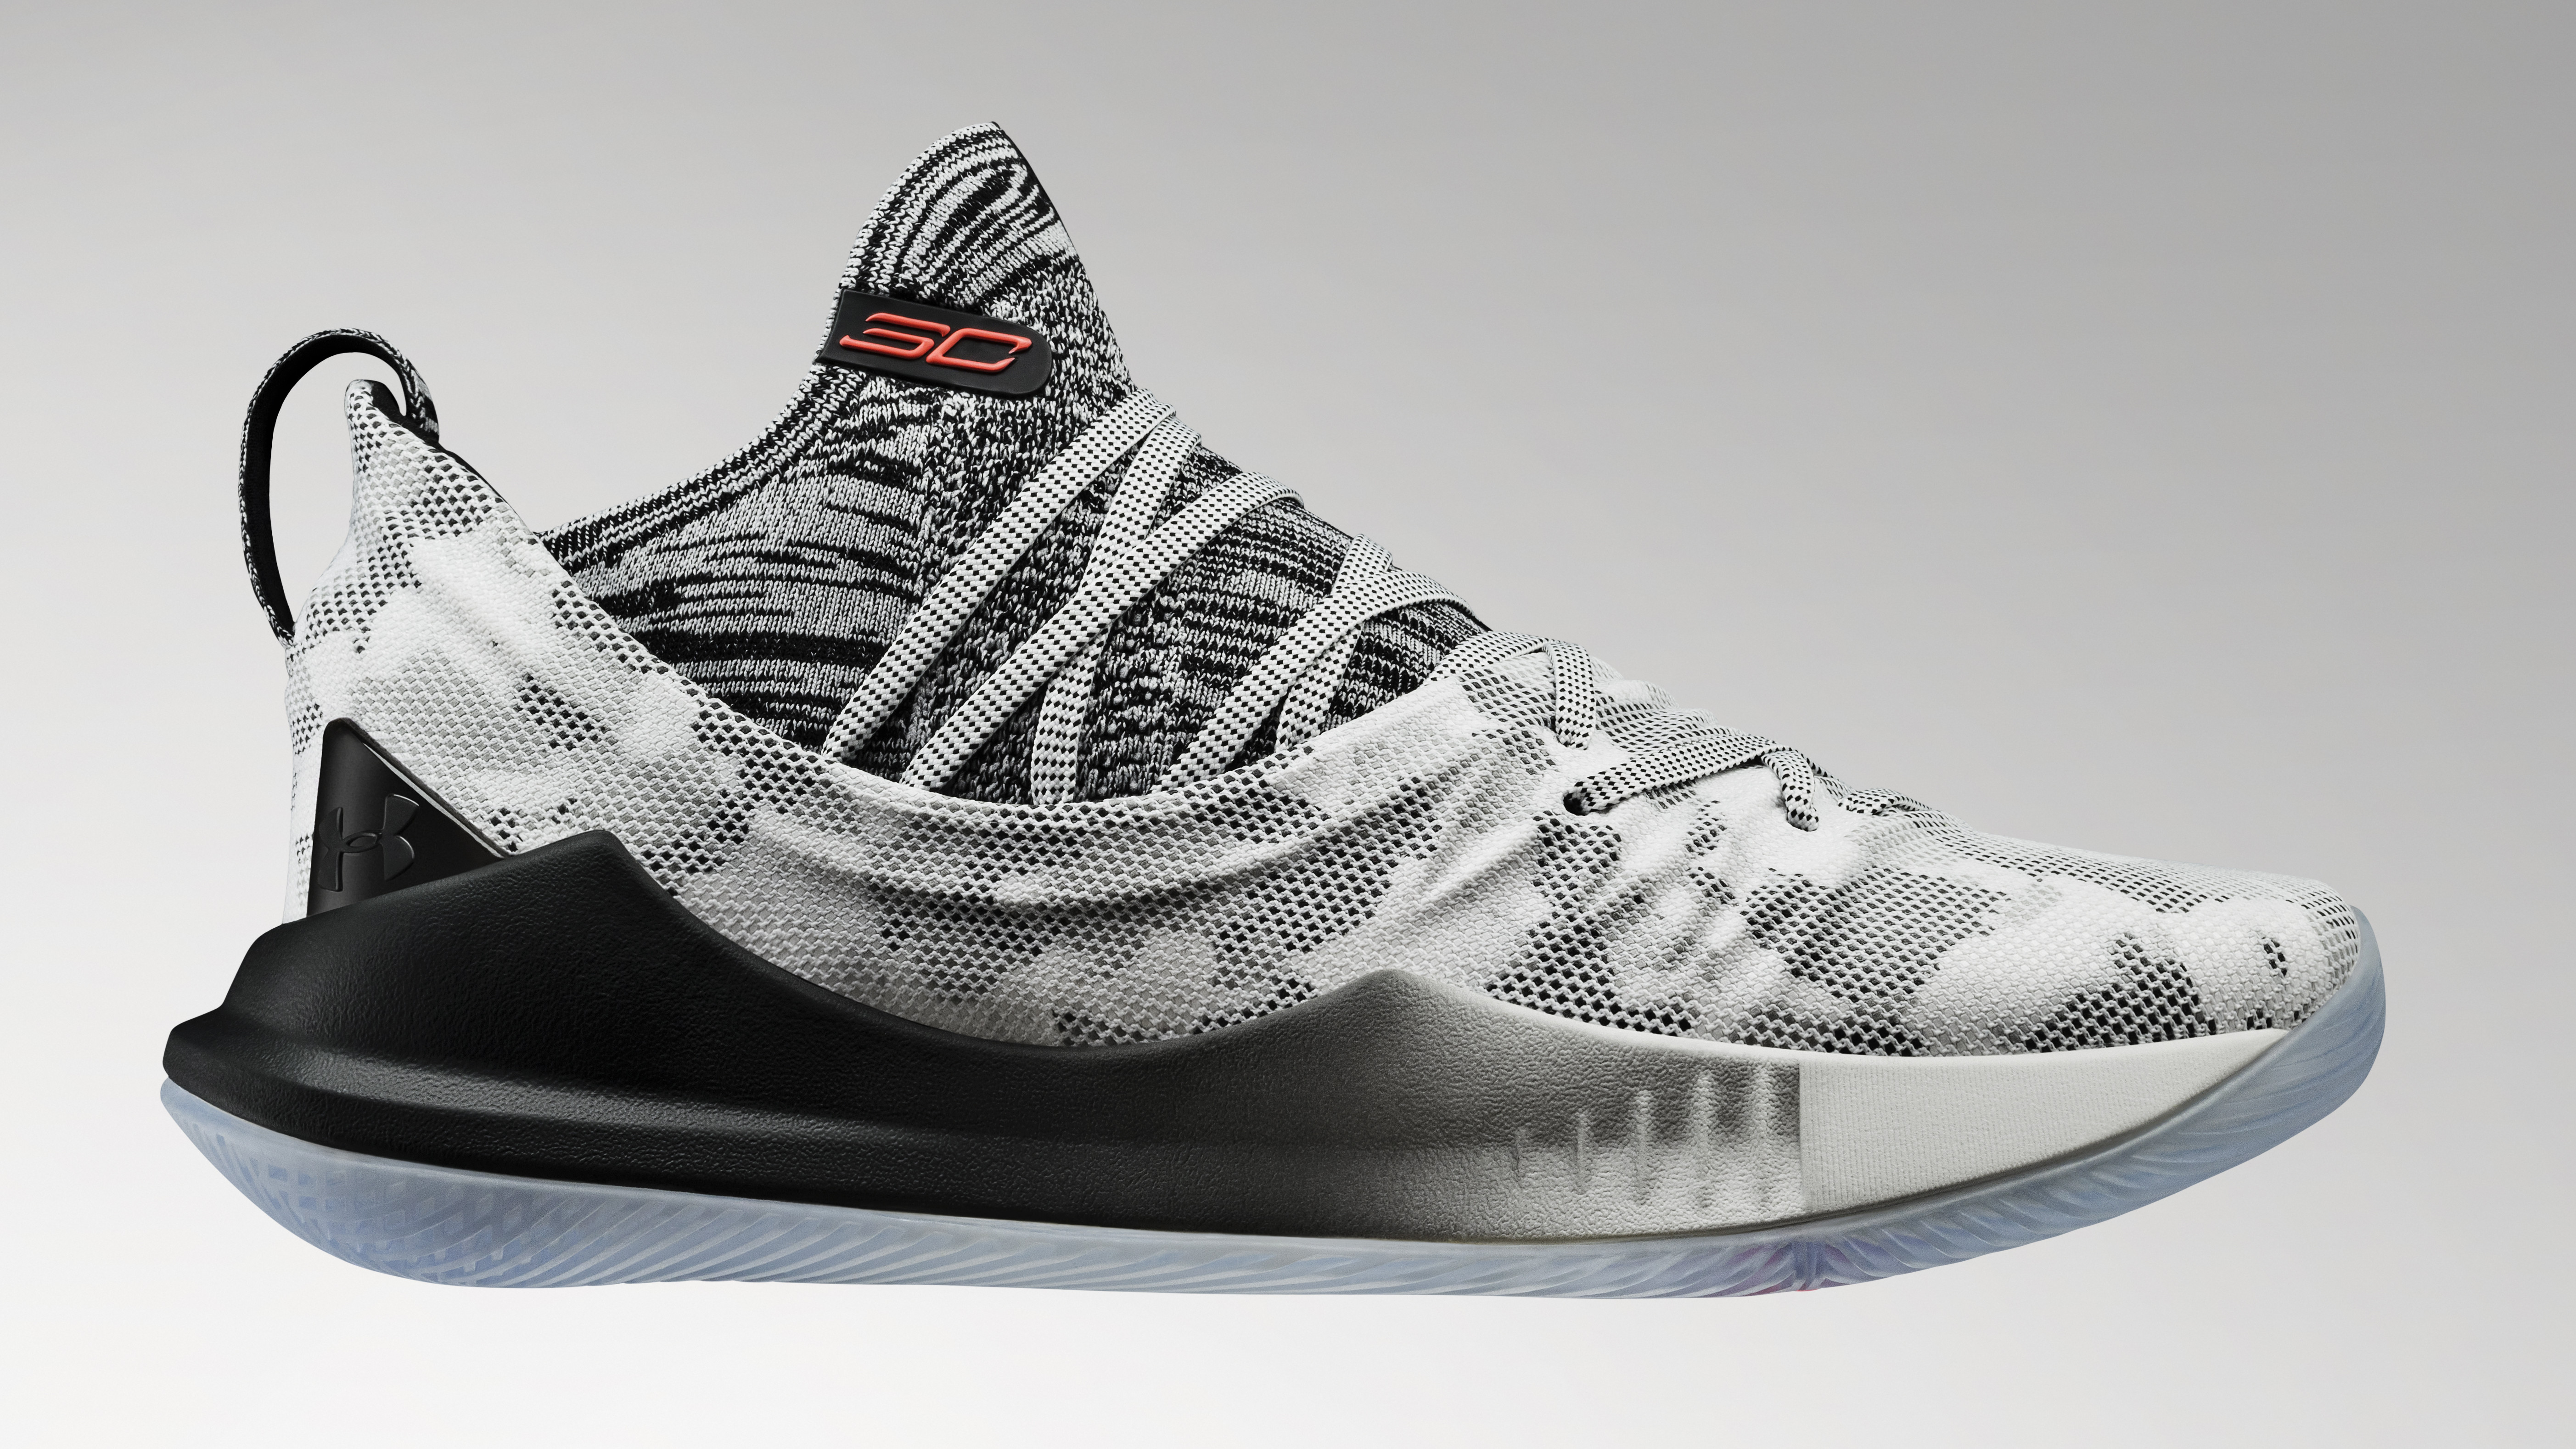 702ea90bfb5 Under Armour Curry 5  International Smoke  3020657-108 Release Date ...